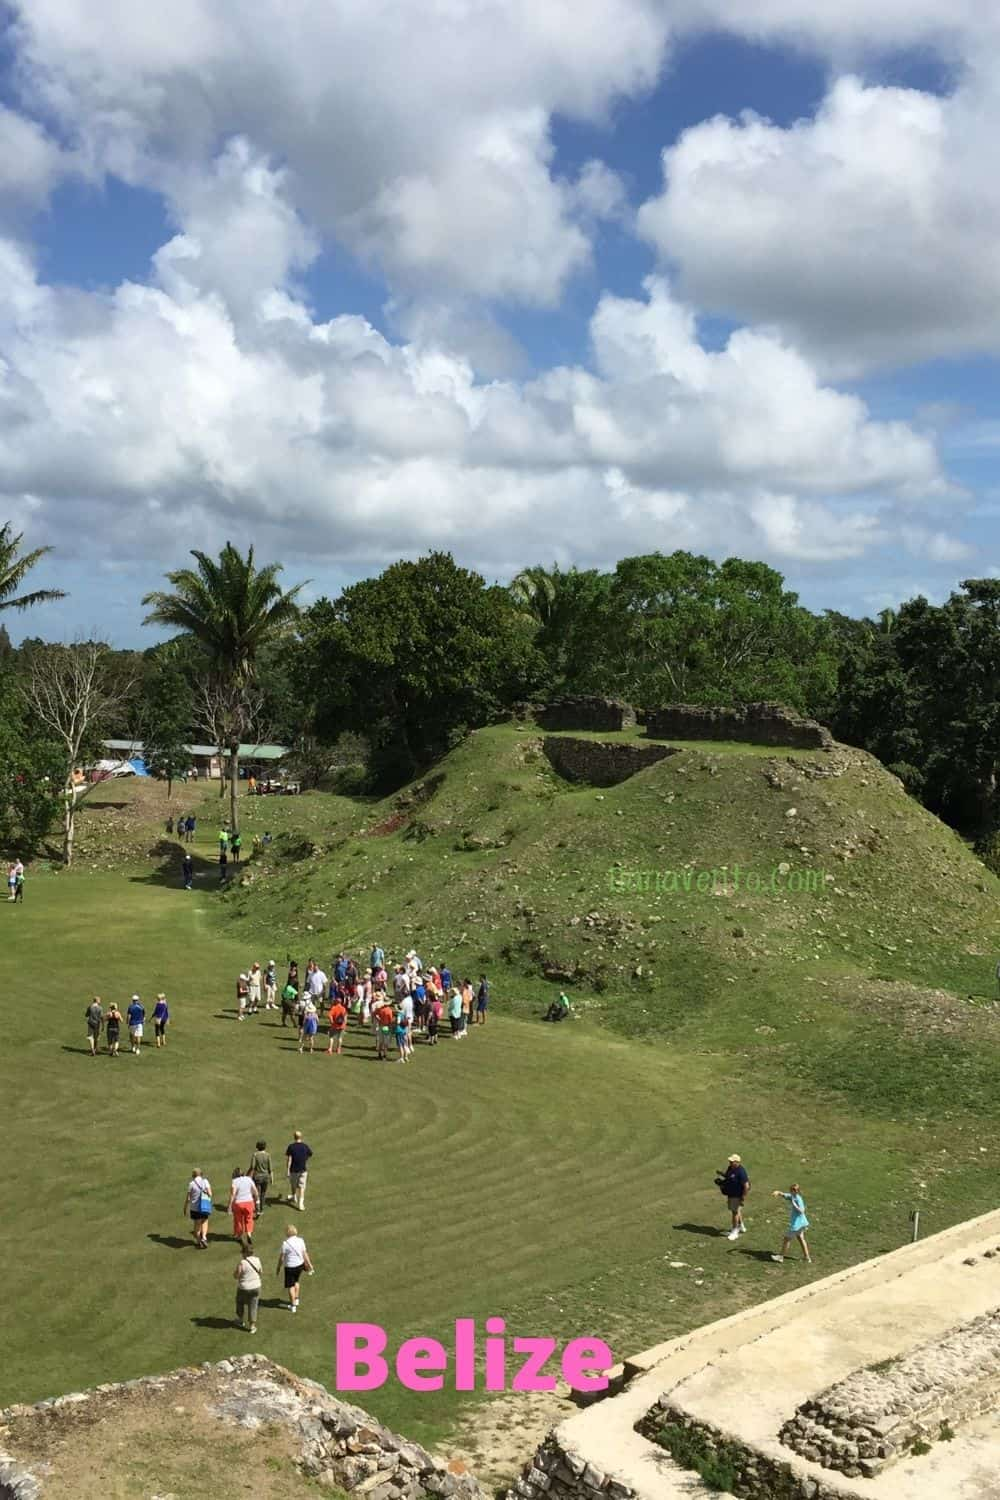 Belize ruins and jungle